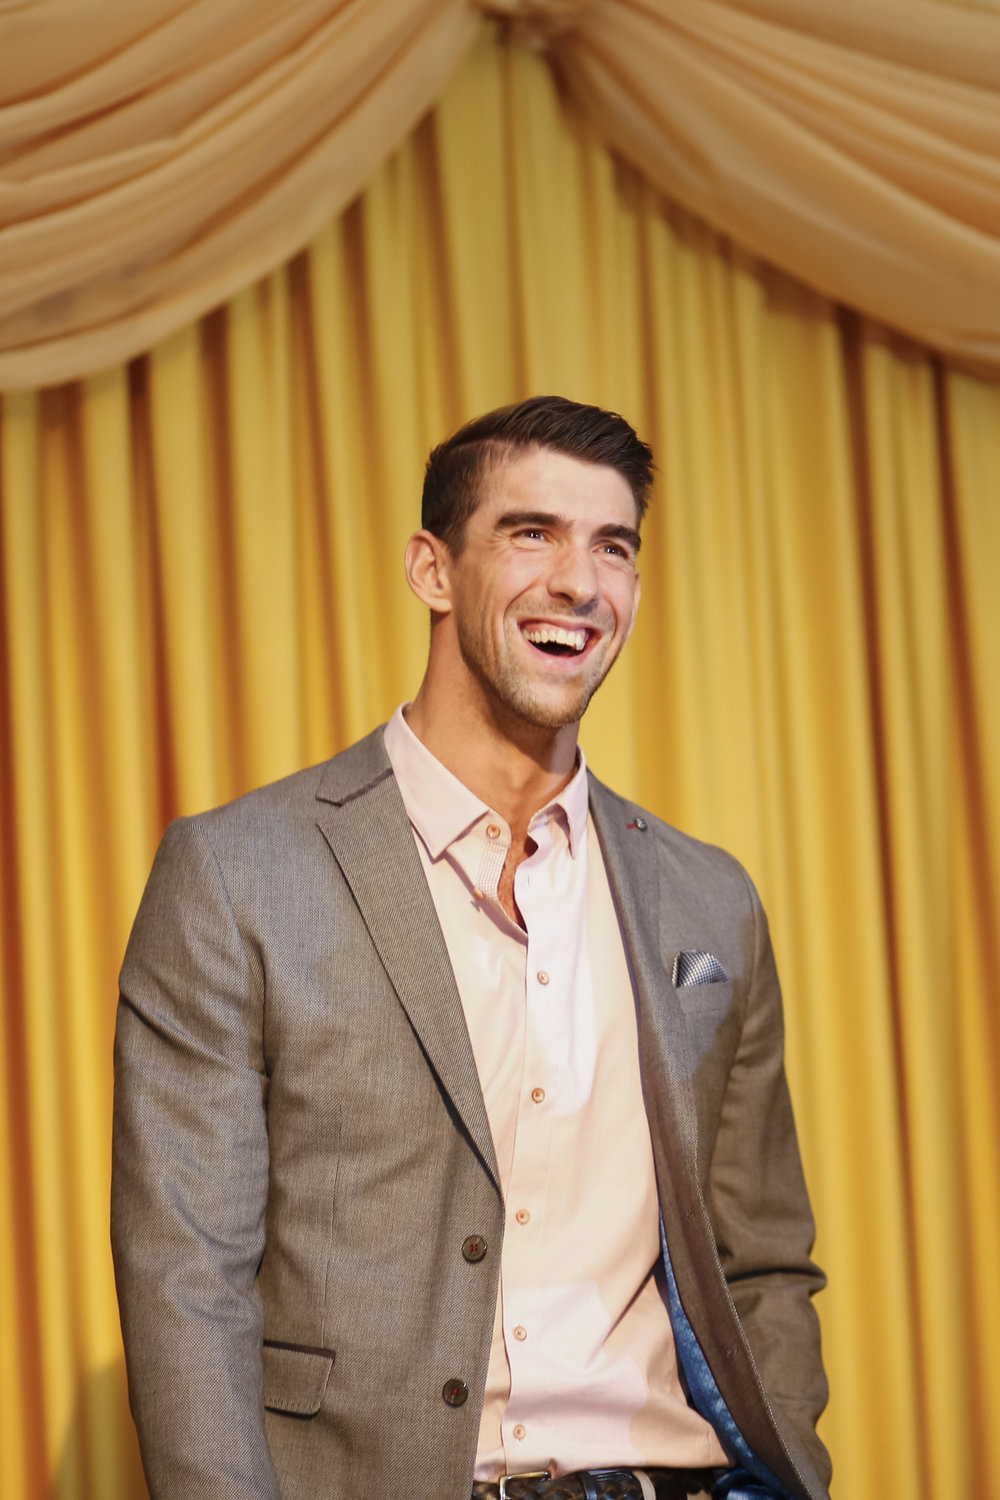 golf-give-gala-celebrity-michael-phelps-jason-day-event-photographer-madison-wi-14.jpg